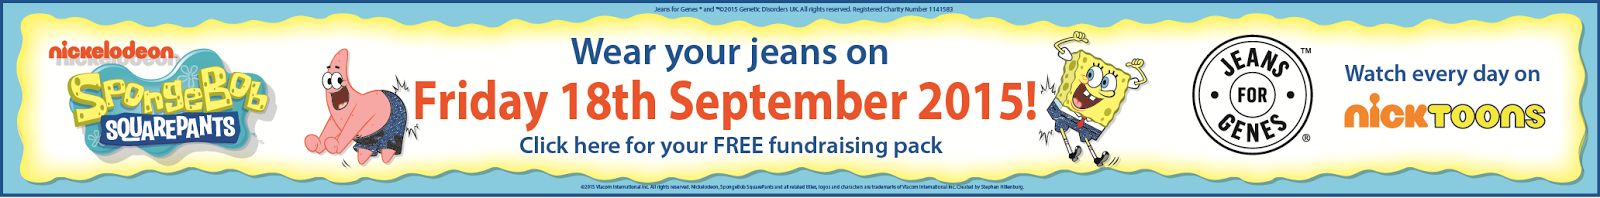 Wear your jeans with SpongeBob SquarePants on Friday 18th September 2015! Click here for your FREE fundraising pack today!